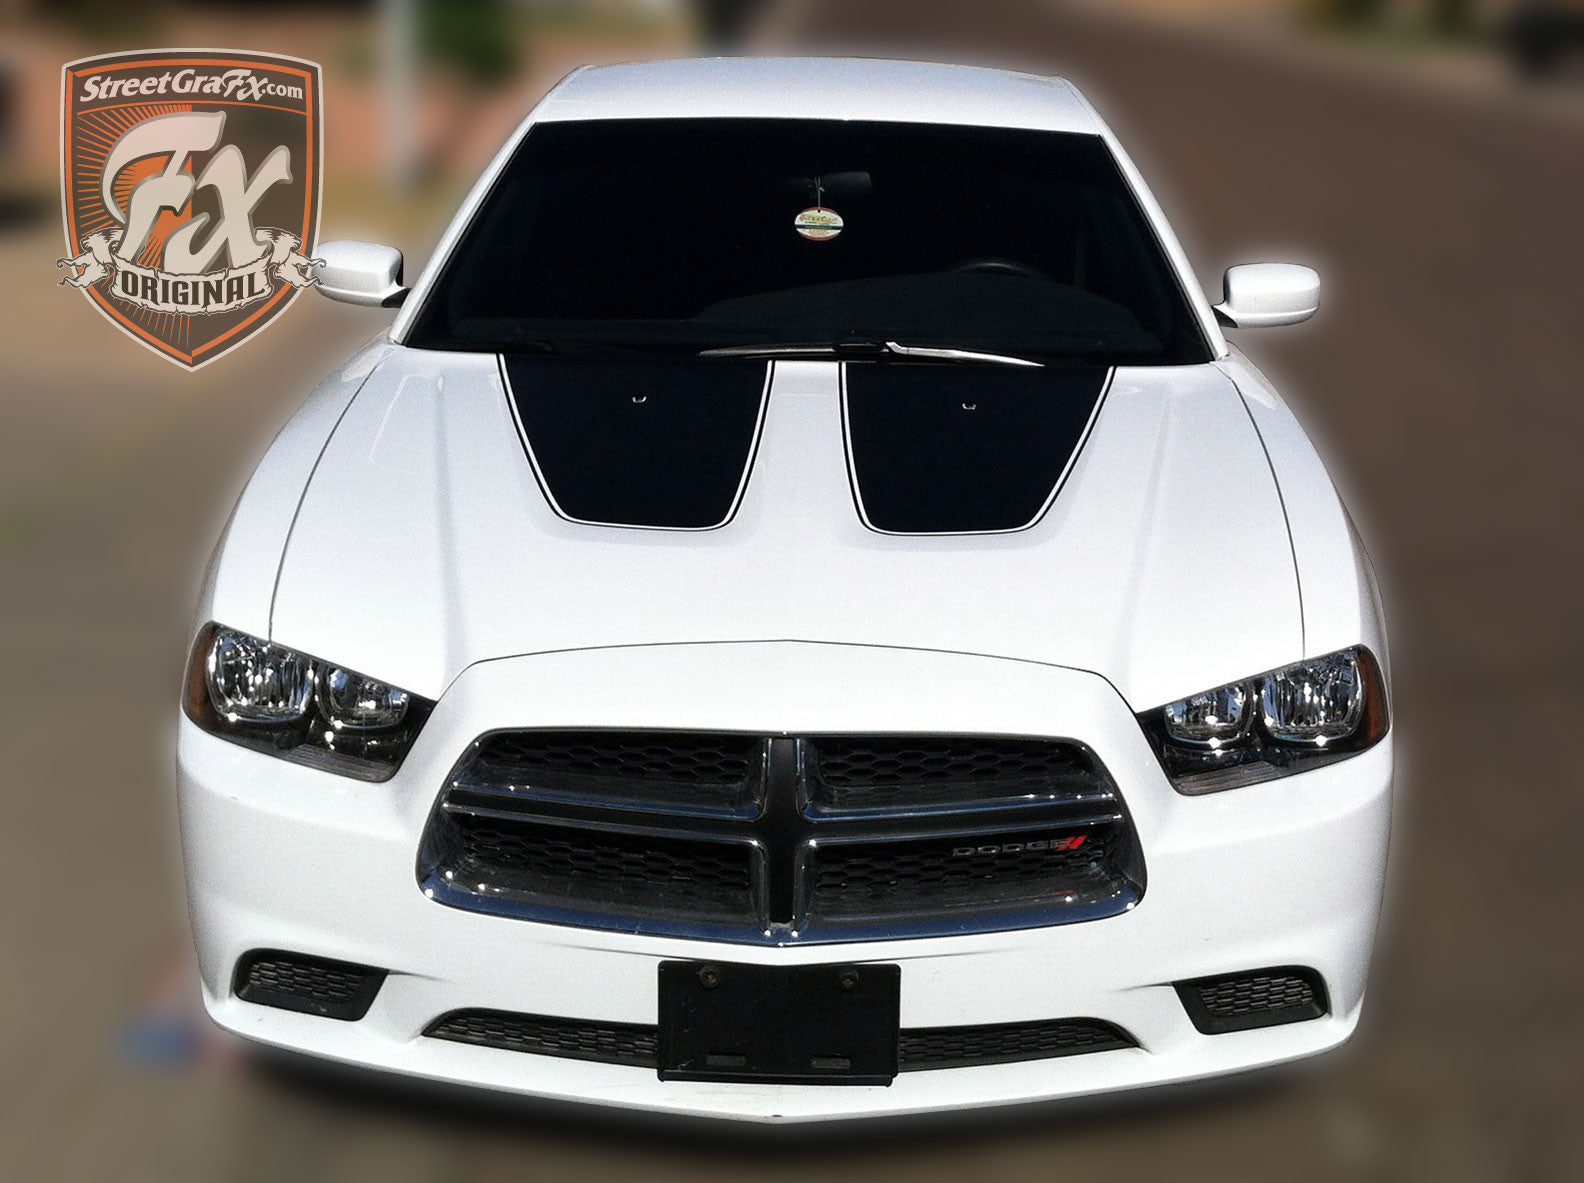 2011 Mustang For Sale >> Dodge Charger Stripes, Racing Stripes & R/T Graphic kit – streetgrafx